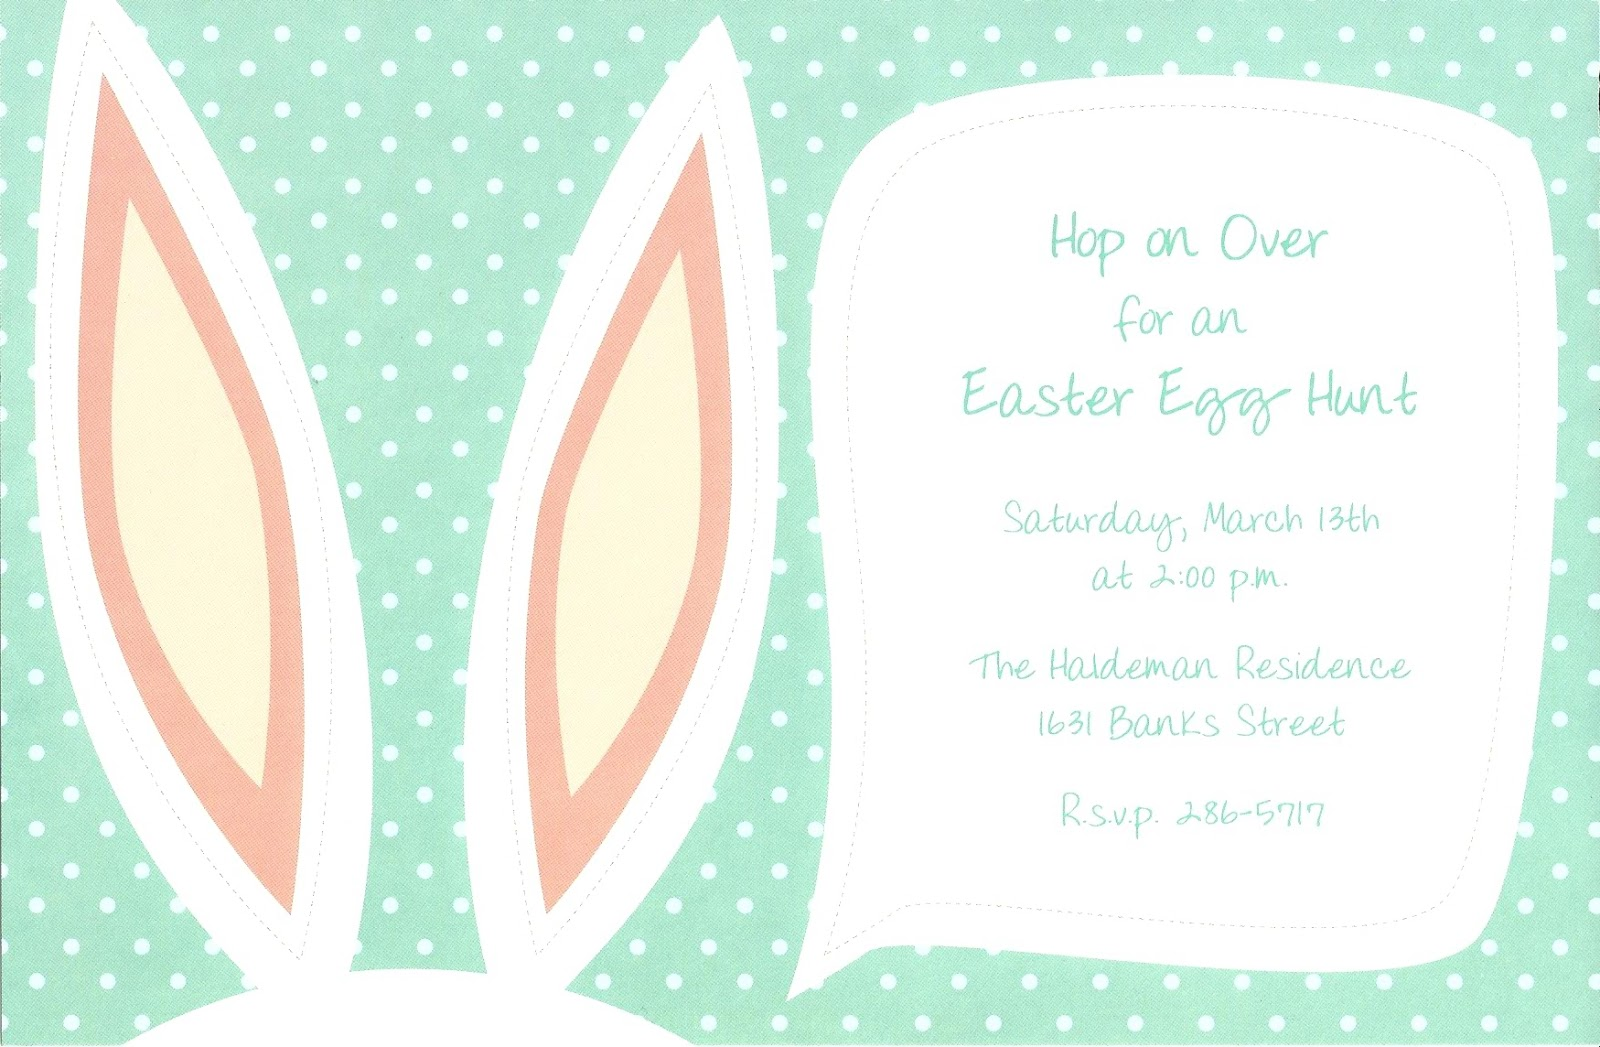 bunny birthday invitation template free ; others-endearing-easter-invitation-e-card-design-with-hayden-avery-fine-stationery-and-blue-text-color-and-white-bunny-illustration